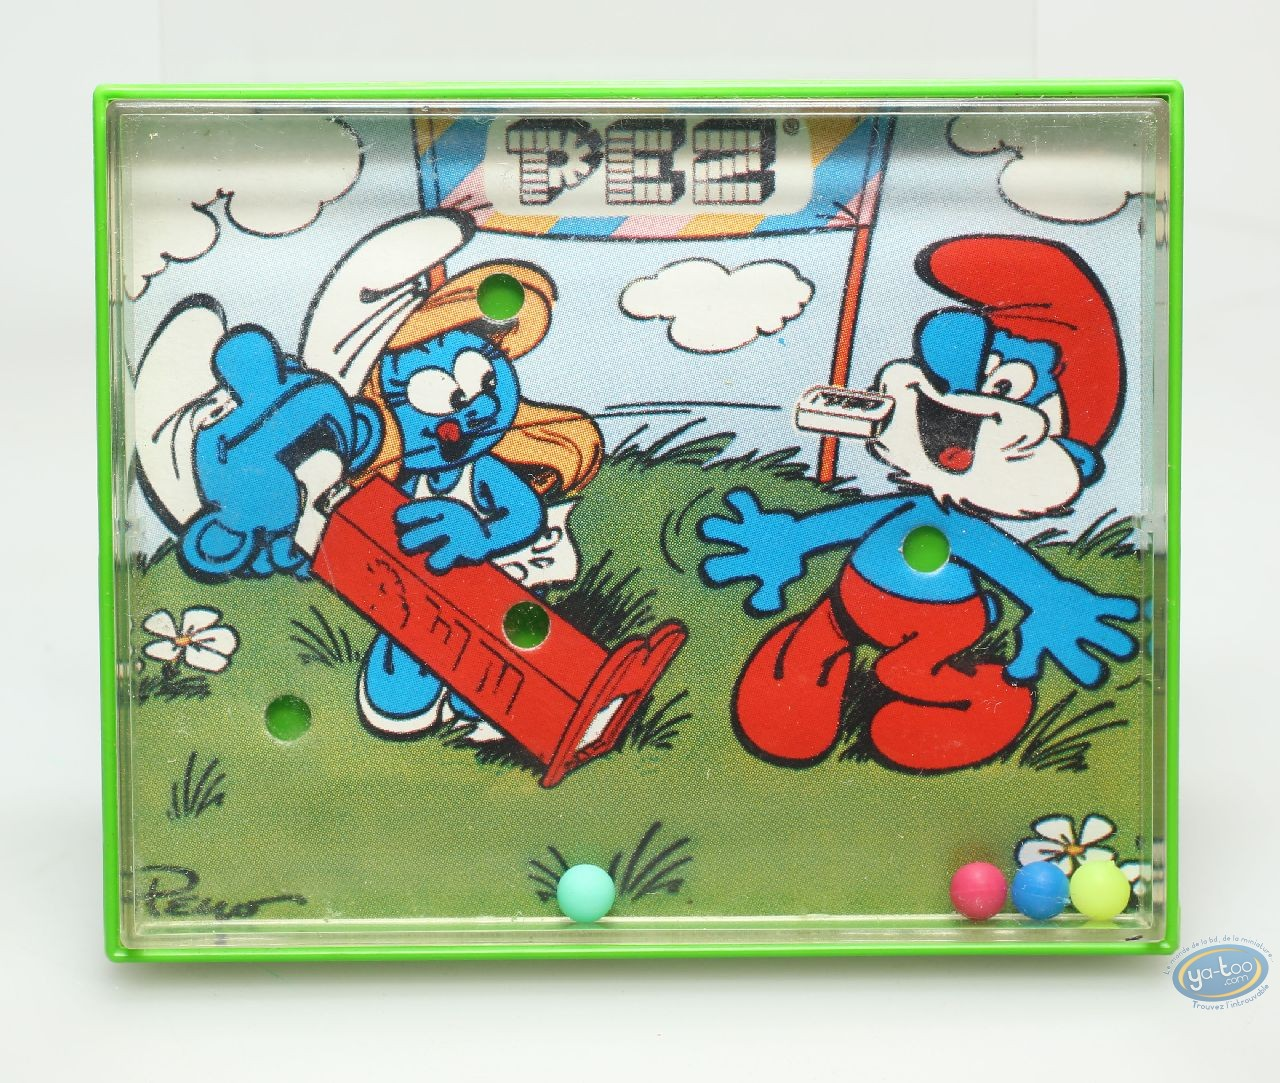 Toy, Smurfs (The) : Smurf's game Pez - green